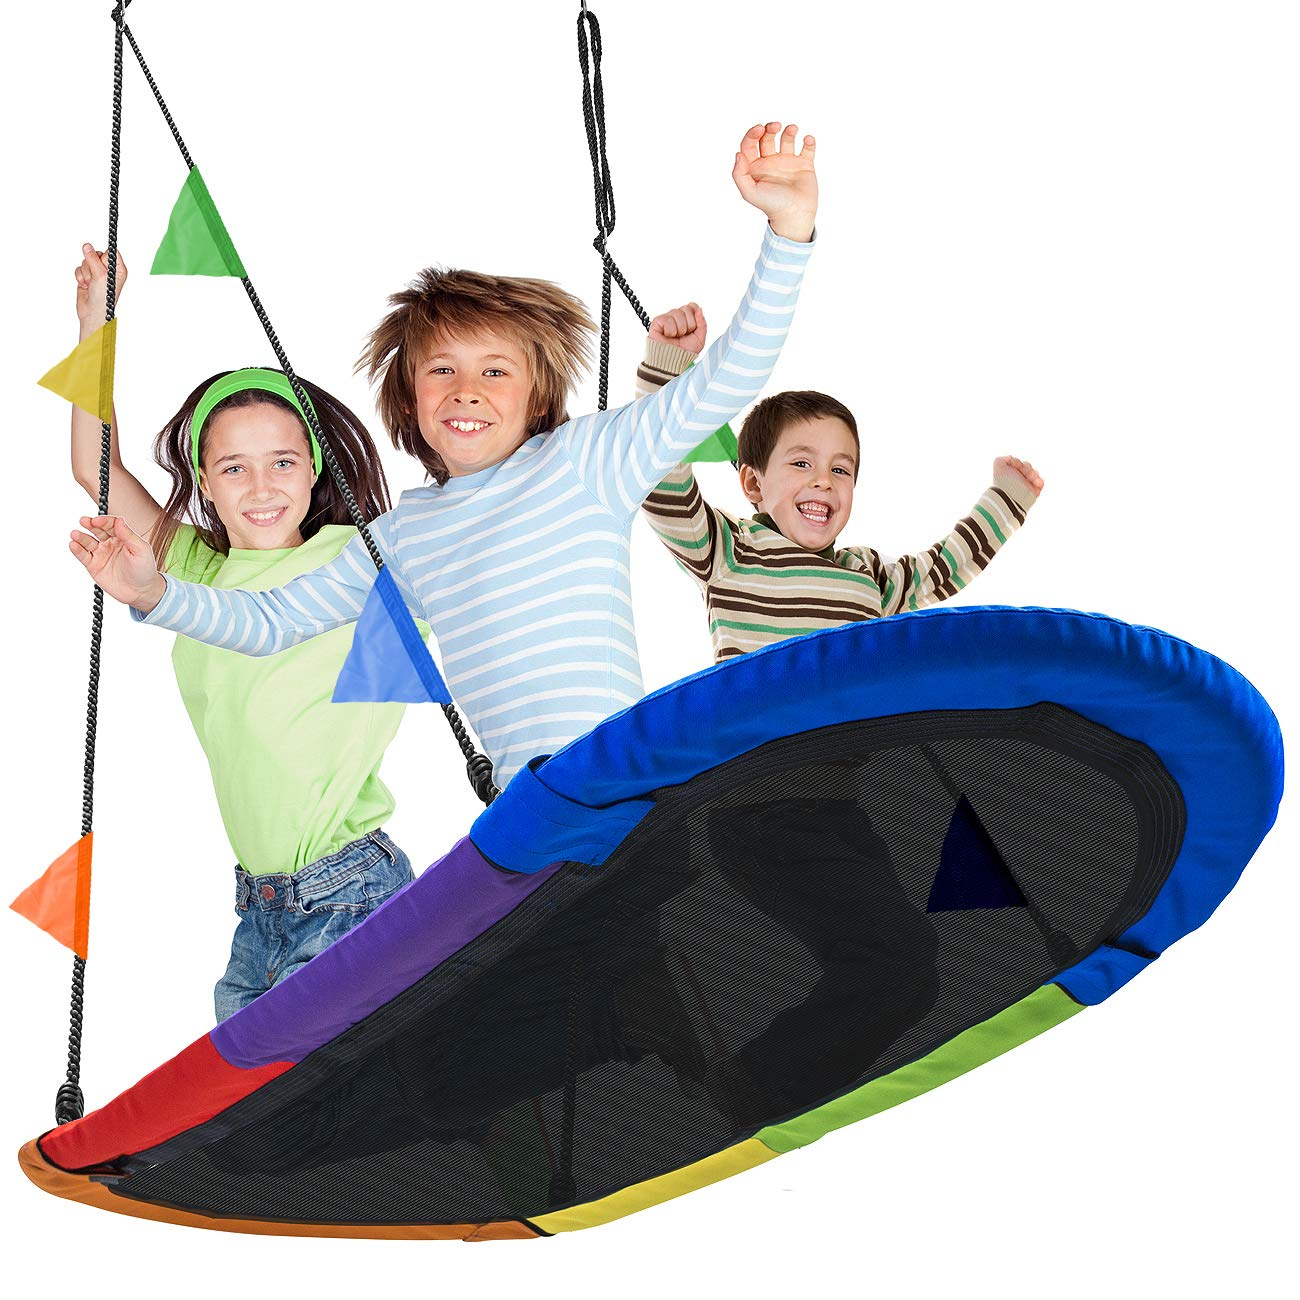 Sorbus Saucer Swing Surf - Kids Indoor/Outdoor Giant Oval Platform Swing Mat - Great for Tree, Swing Set, Backyard, Playground, Playroom - Accessories Included - Multi-Color Rainbow (Oval Surf Swing) by Sorbus